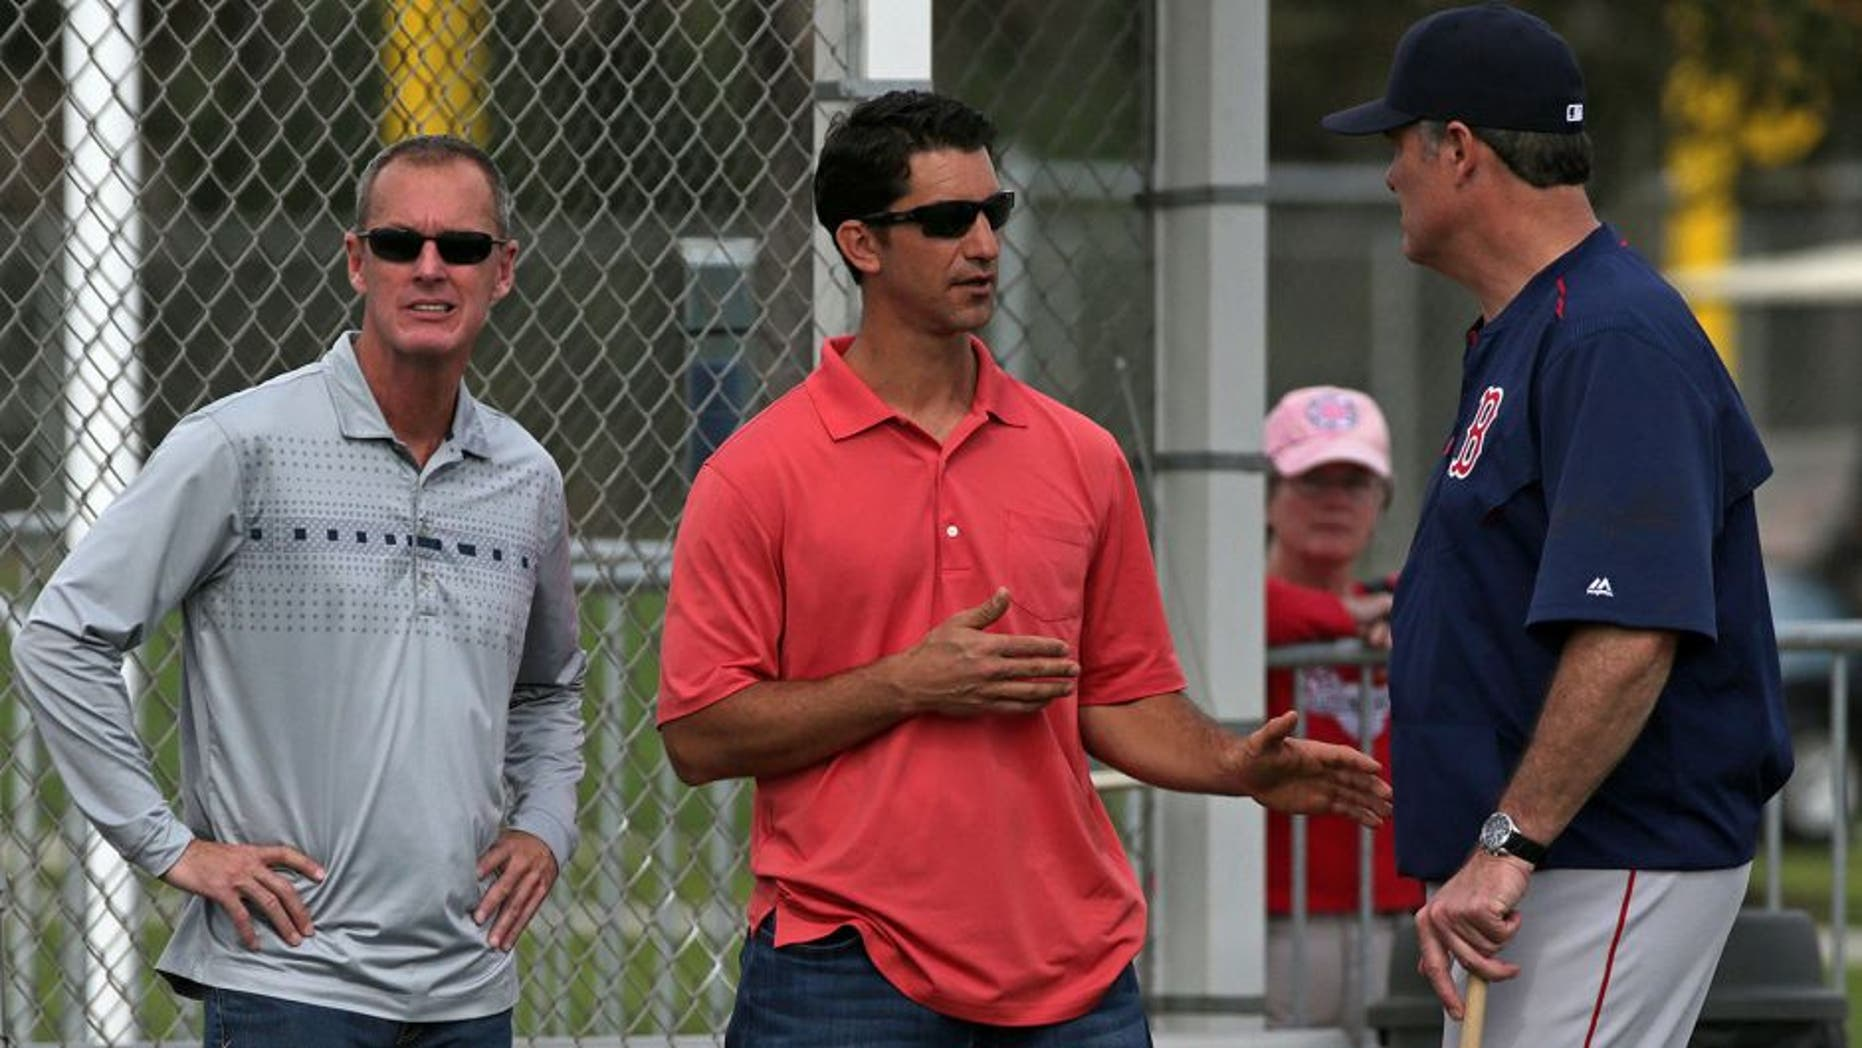 FORT MYERS, FL - FEBRUARY 23: Left to right: Allard Baird, Red Sox Vice President, Player Personnel, and Red Sox assistant general manager Mike Hazen talk with Boston Red Sox manager John Farrell. It was reported today that Cuban super prospect Yoan Moncada had agreed to sign with the team for a record $31.5 million signing bonus. (Photo by Barry Chin/The Boston Globe via Getty Images)